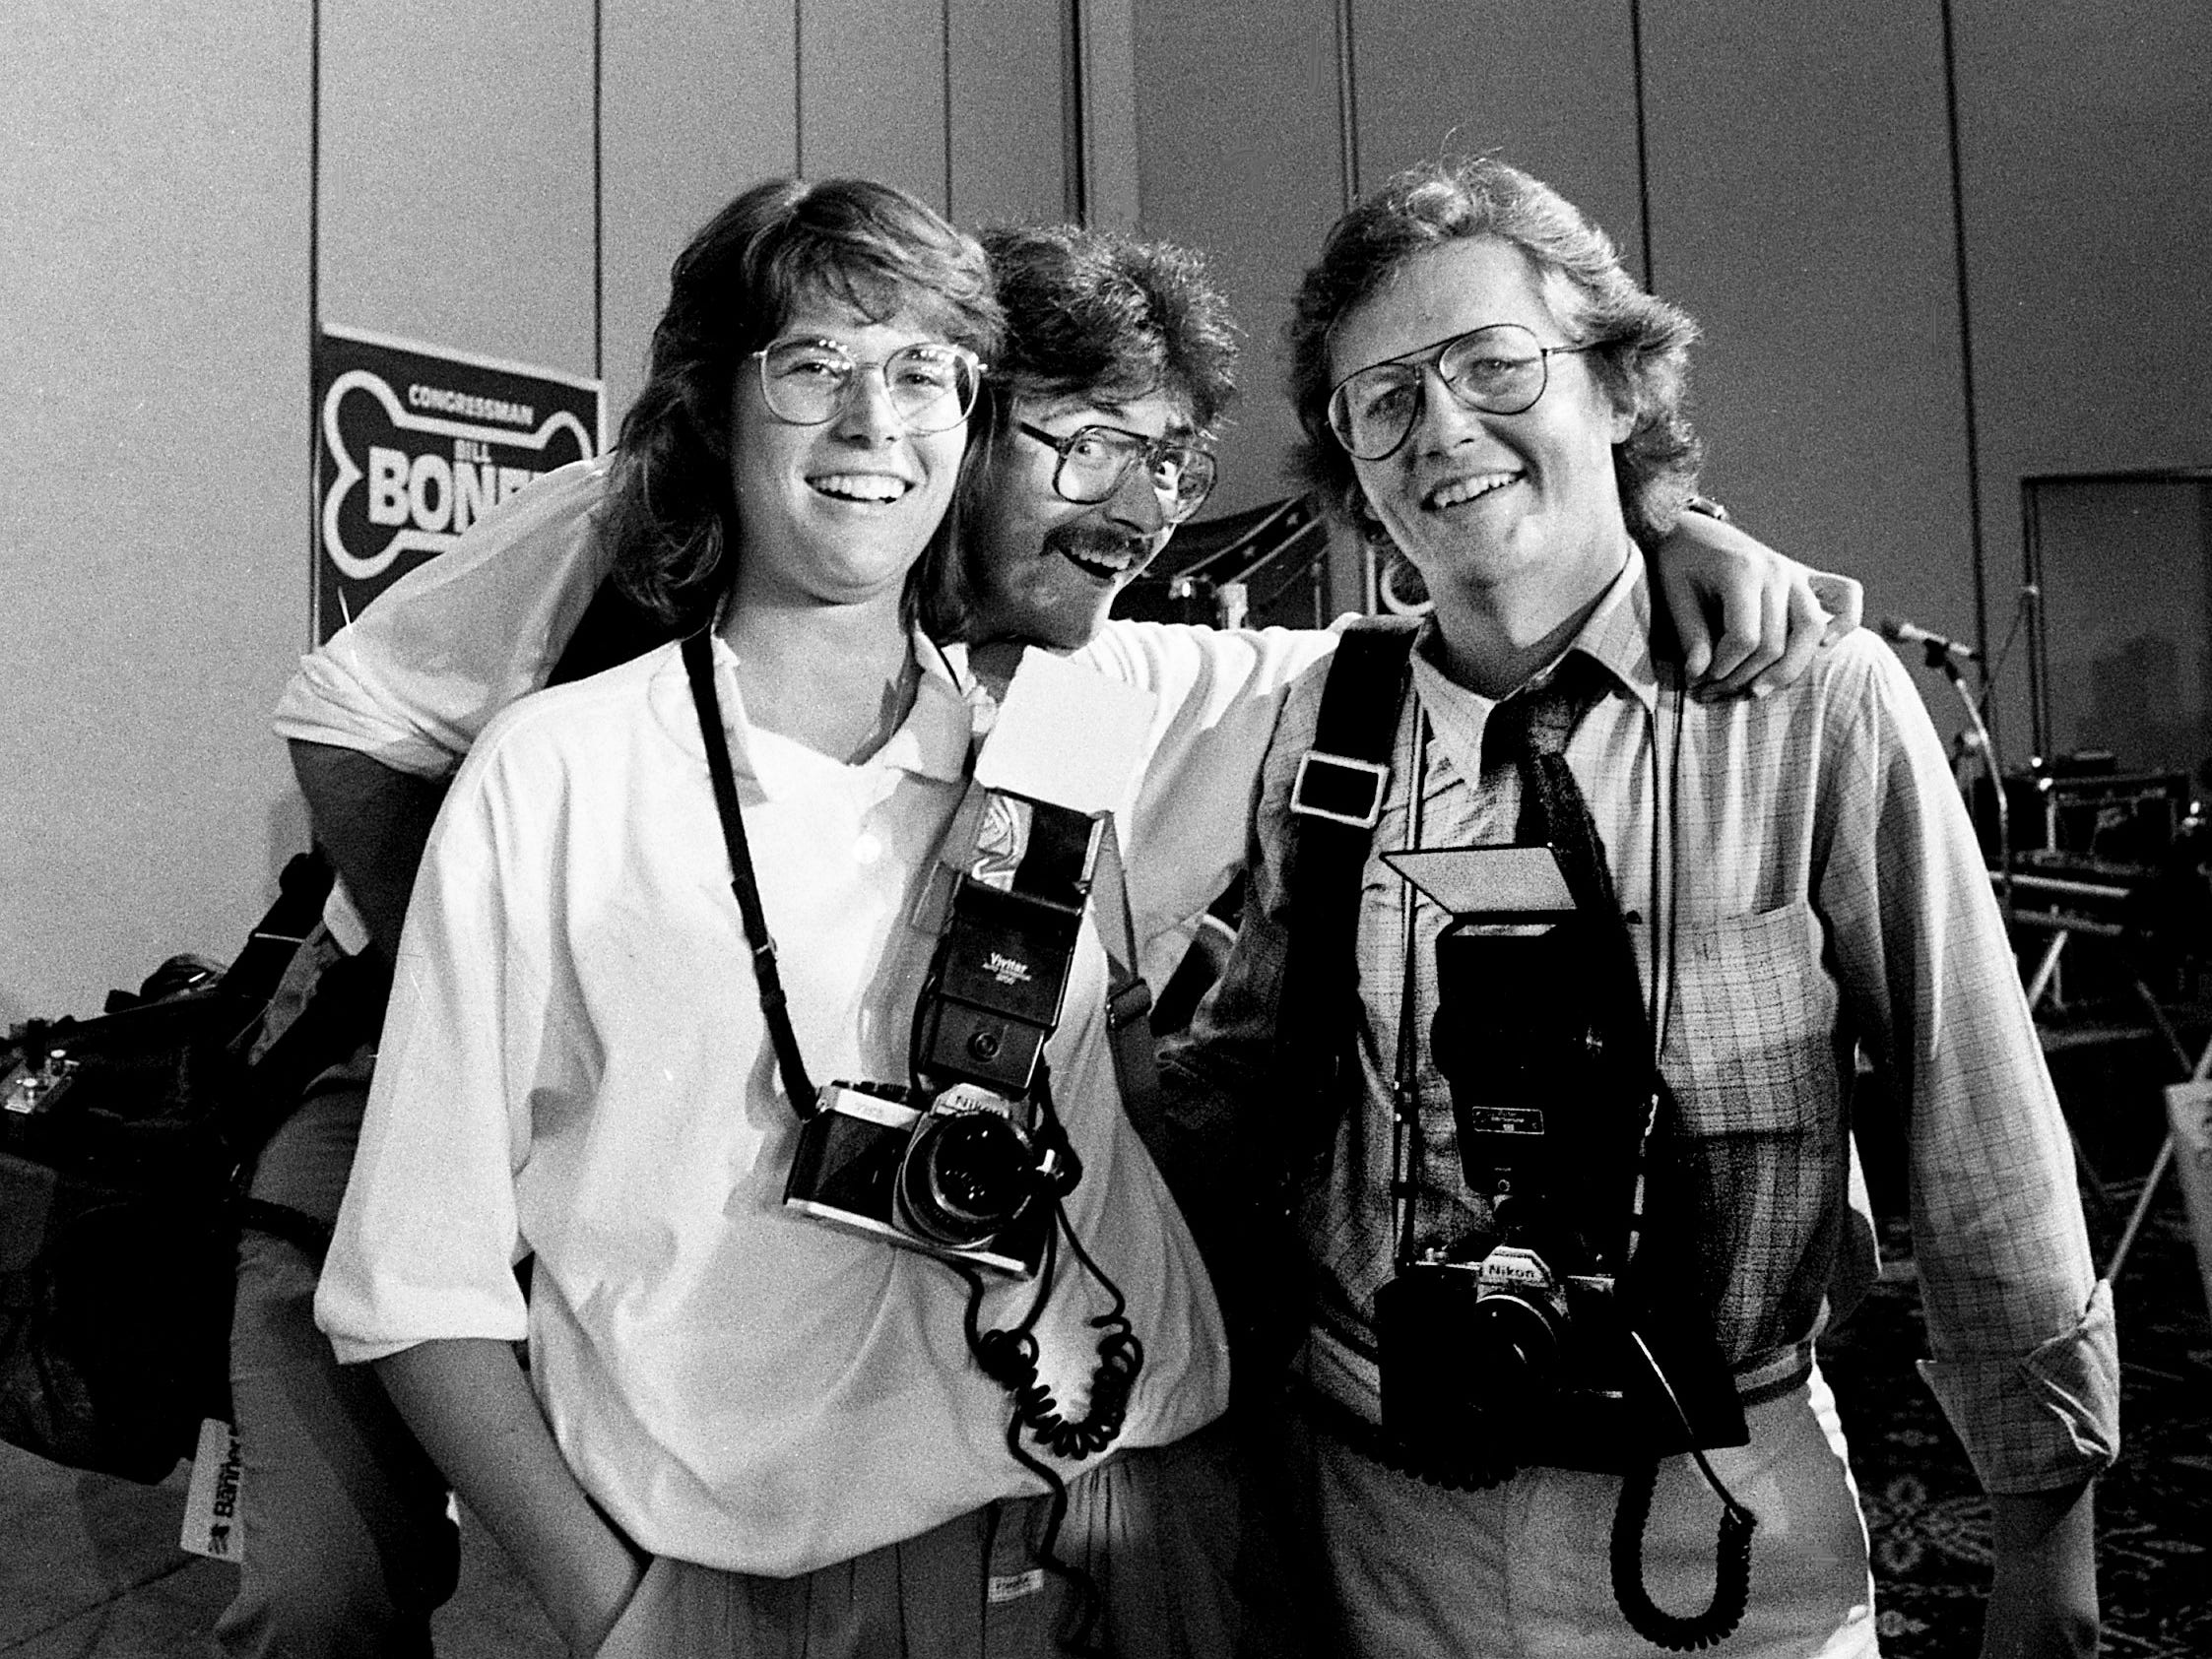 Tennessean photographer Callie Shell poses with photographer Bill Thorup on election night Aug. 7, 1986, at Opryland Hotel.